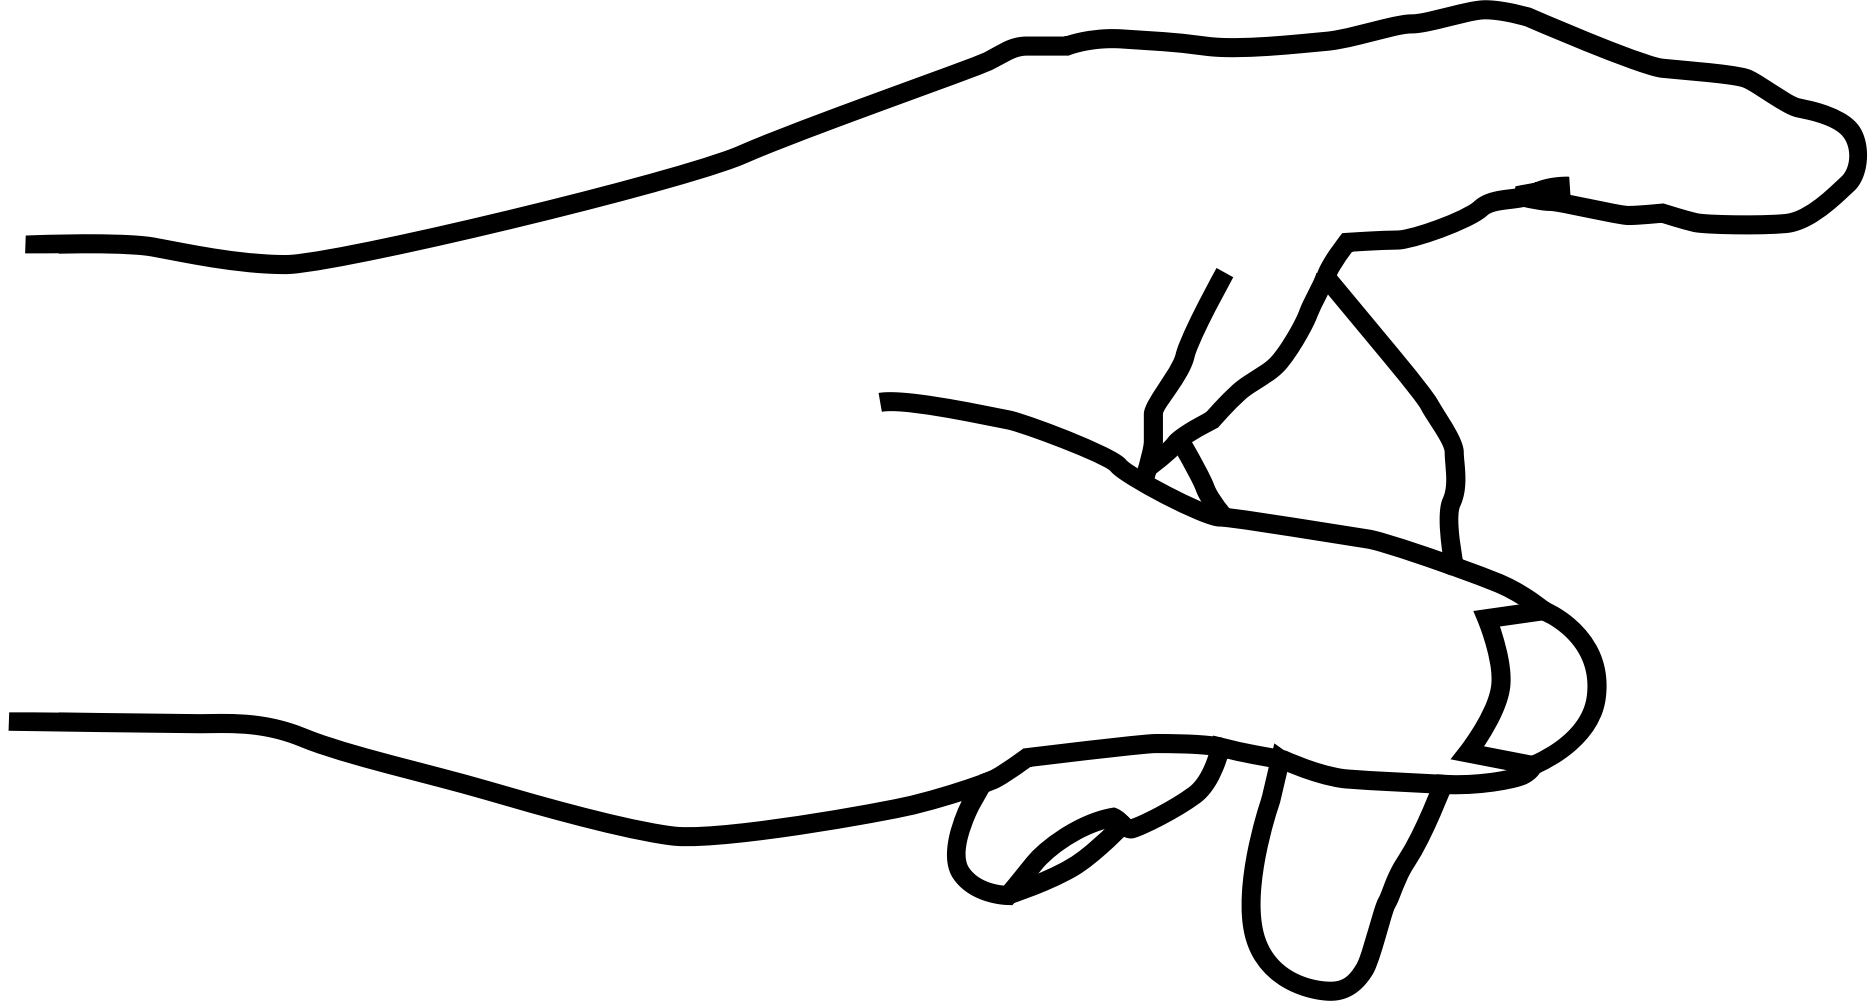 Clipart sun hand. Finger outline pencil and